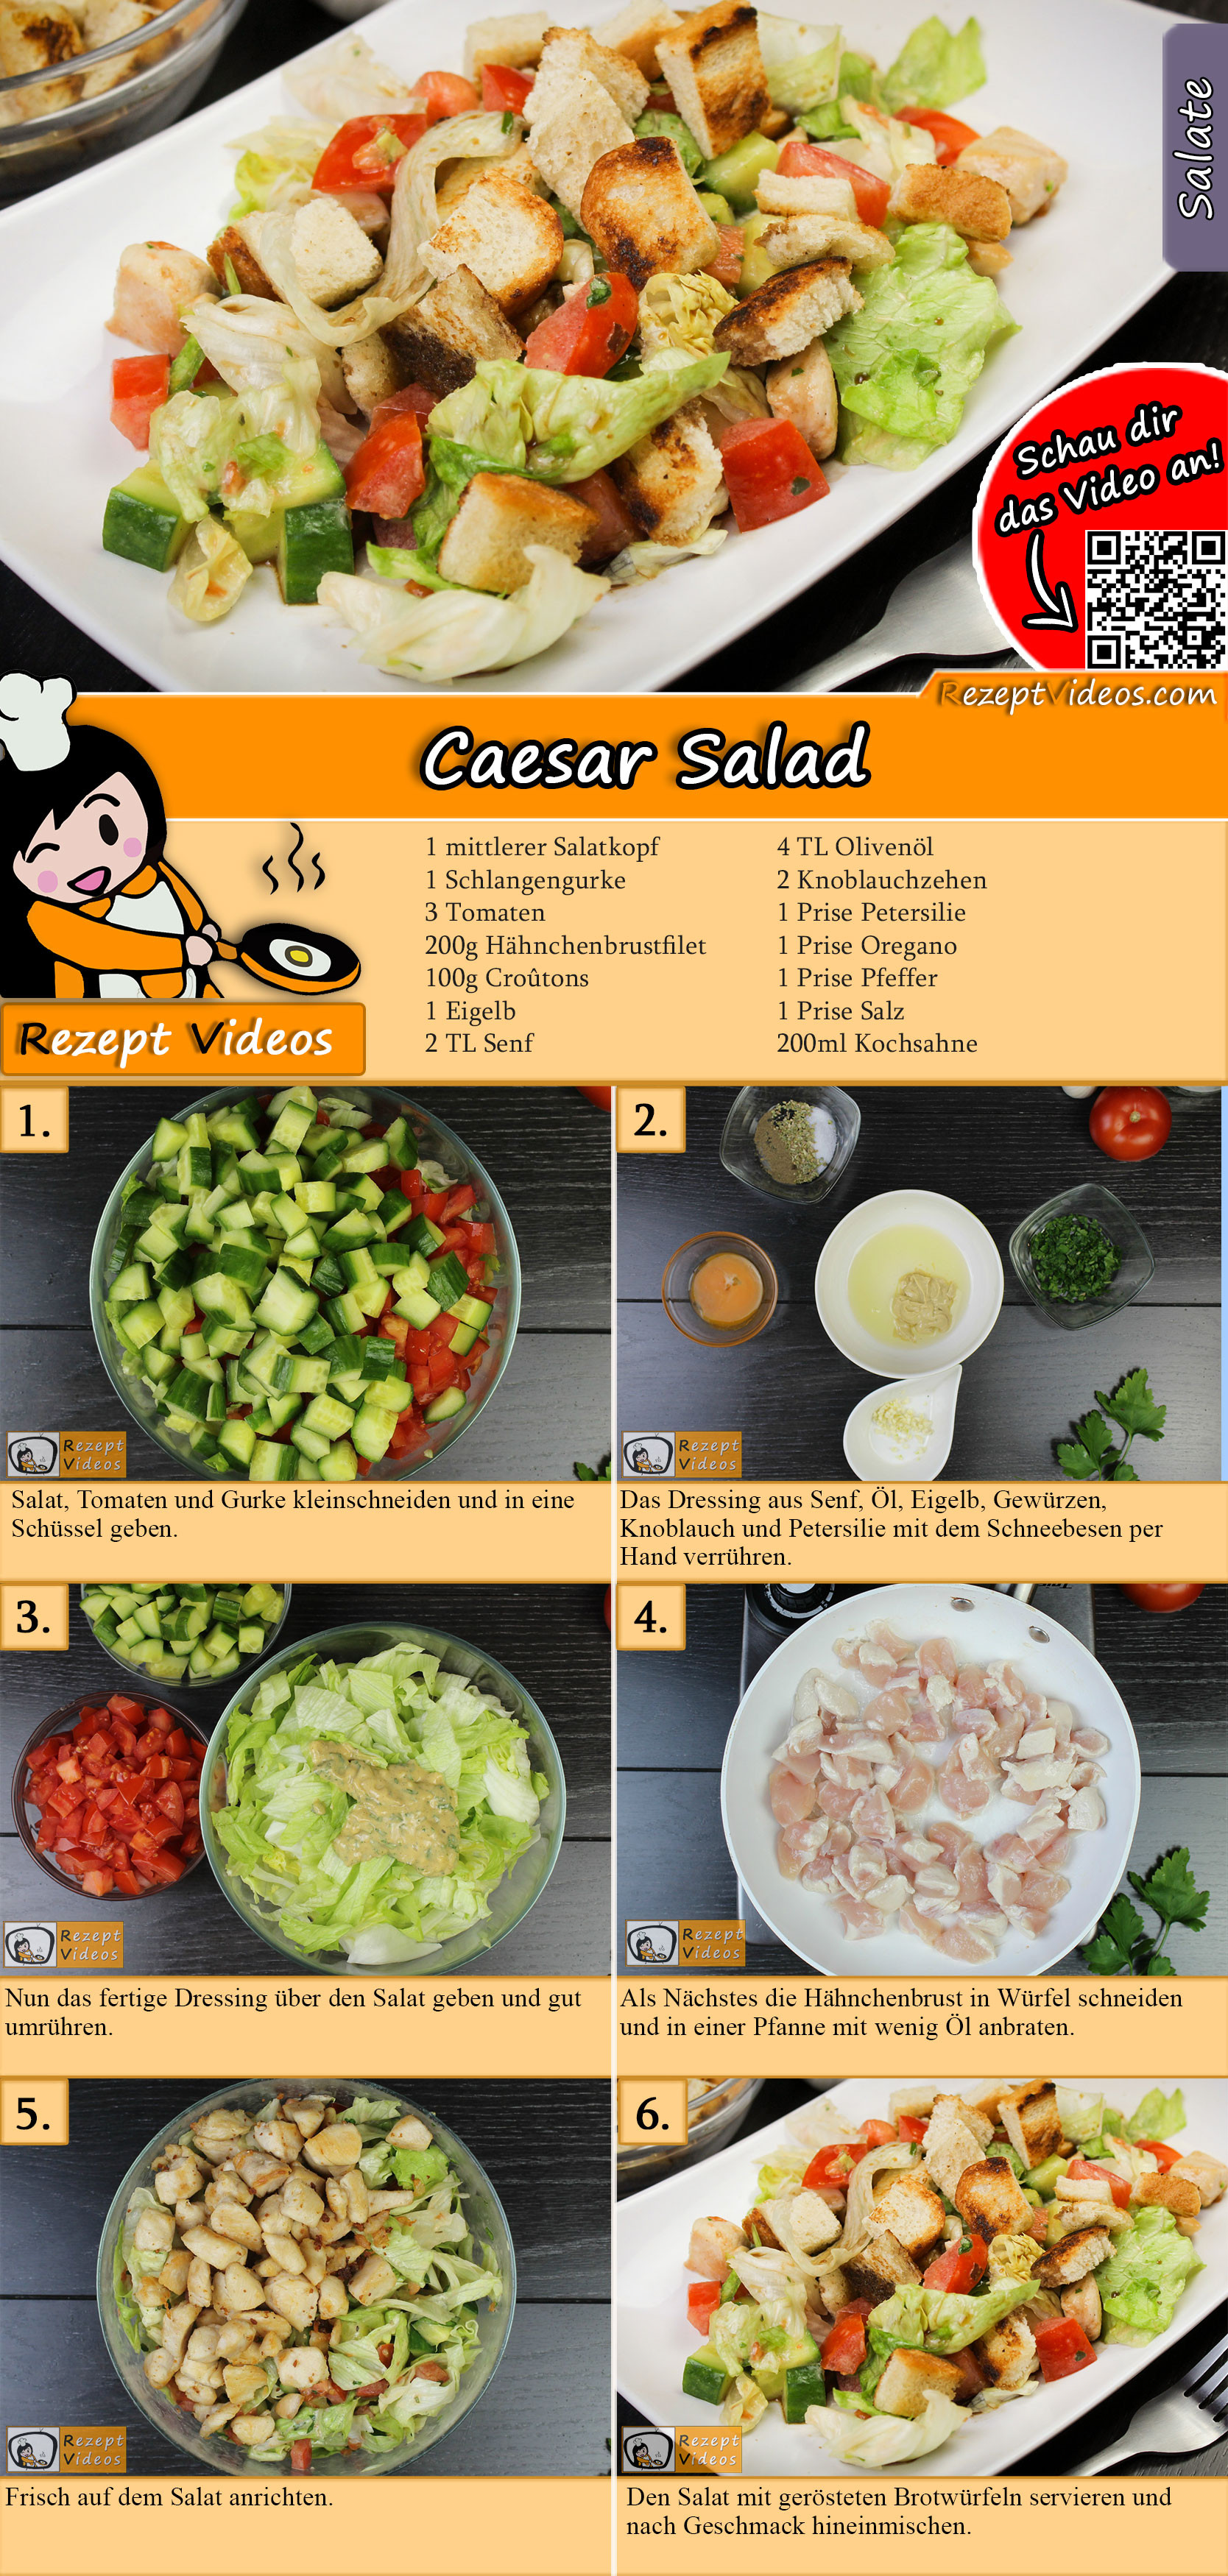 Caesar Salad Rezept mit Video